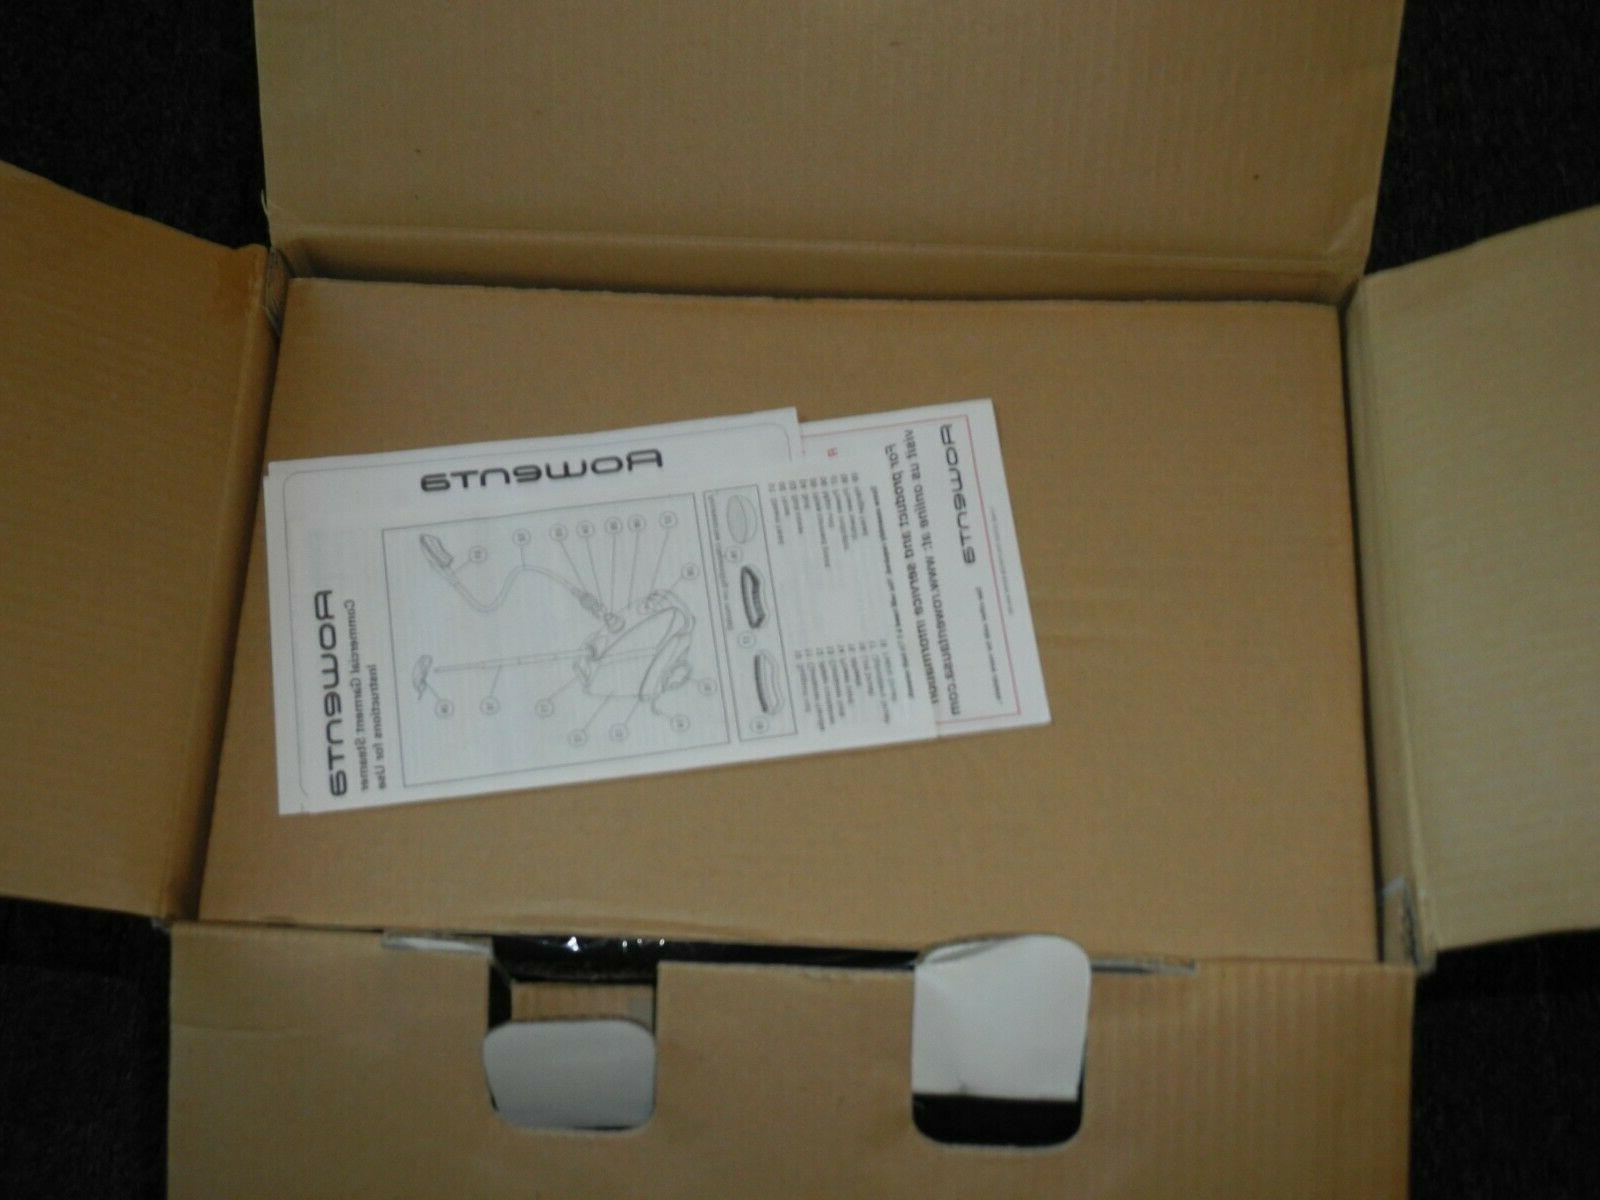 NEW In Box IS-7800 1500W